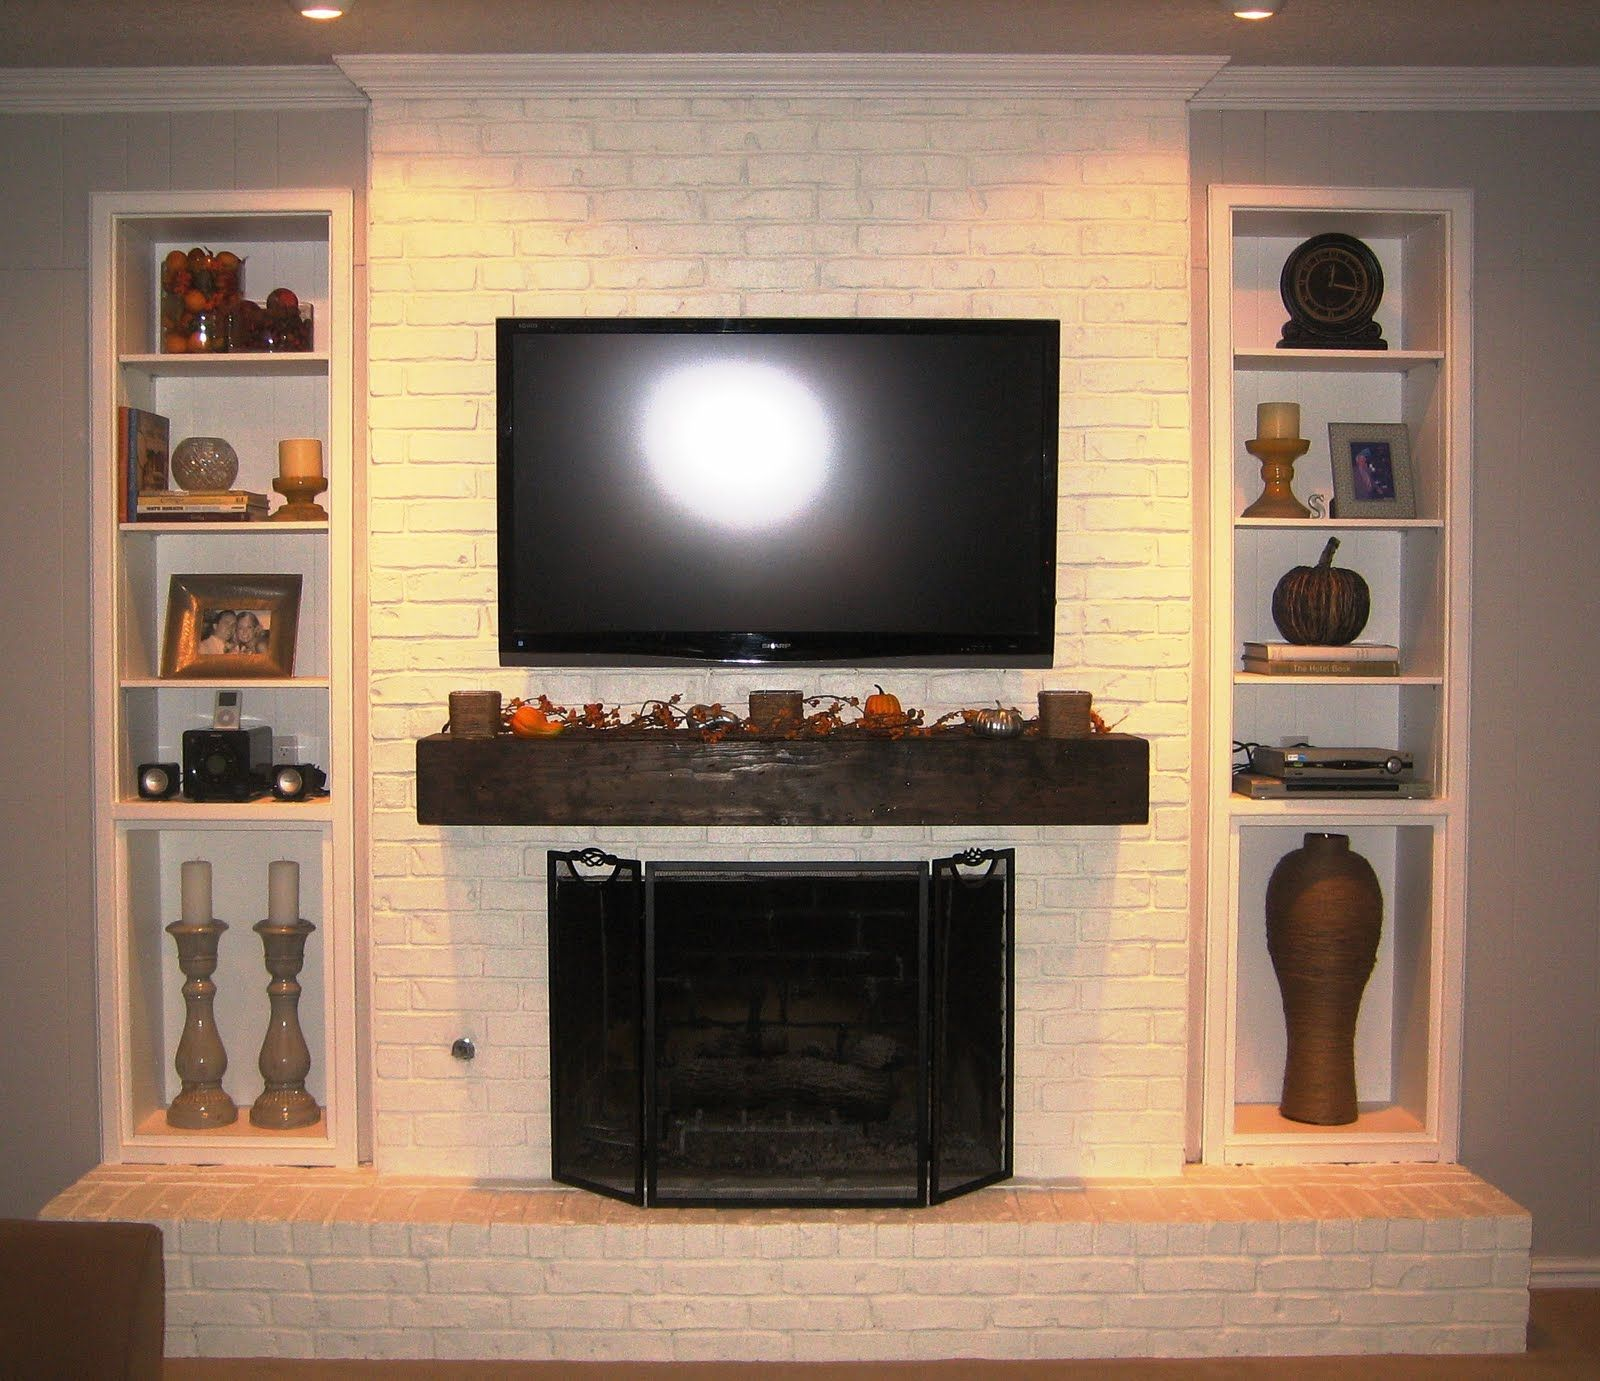 Homey Touch To Your Living With Brick Fireplace: Crown Molding And Interior  Paint Color With